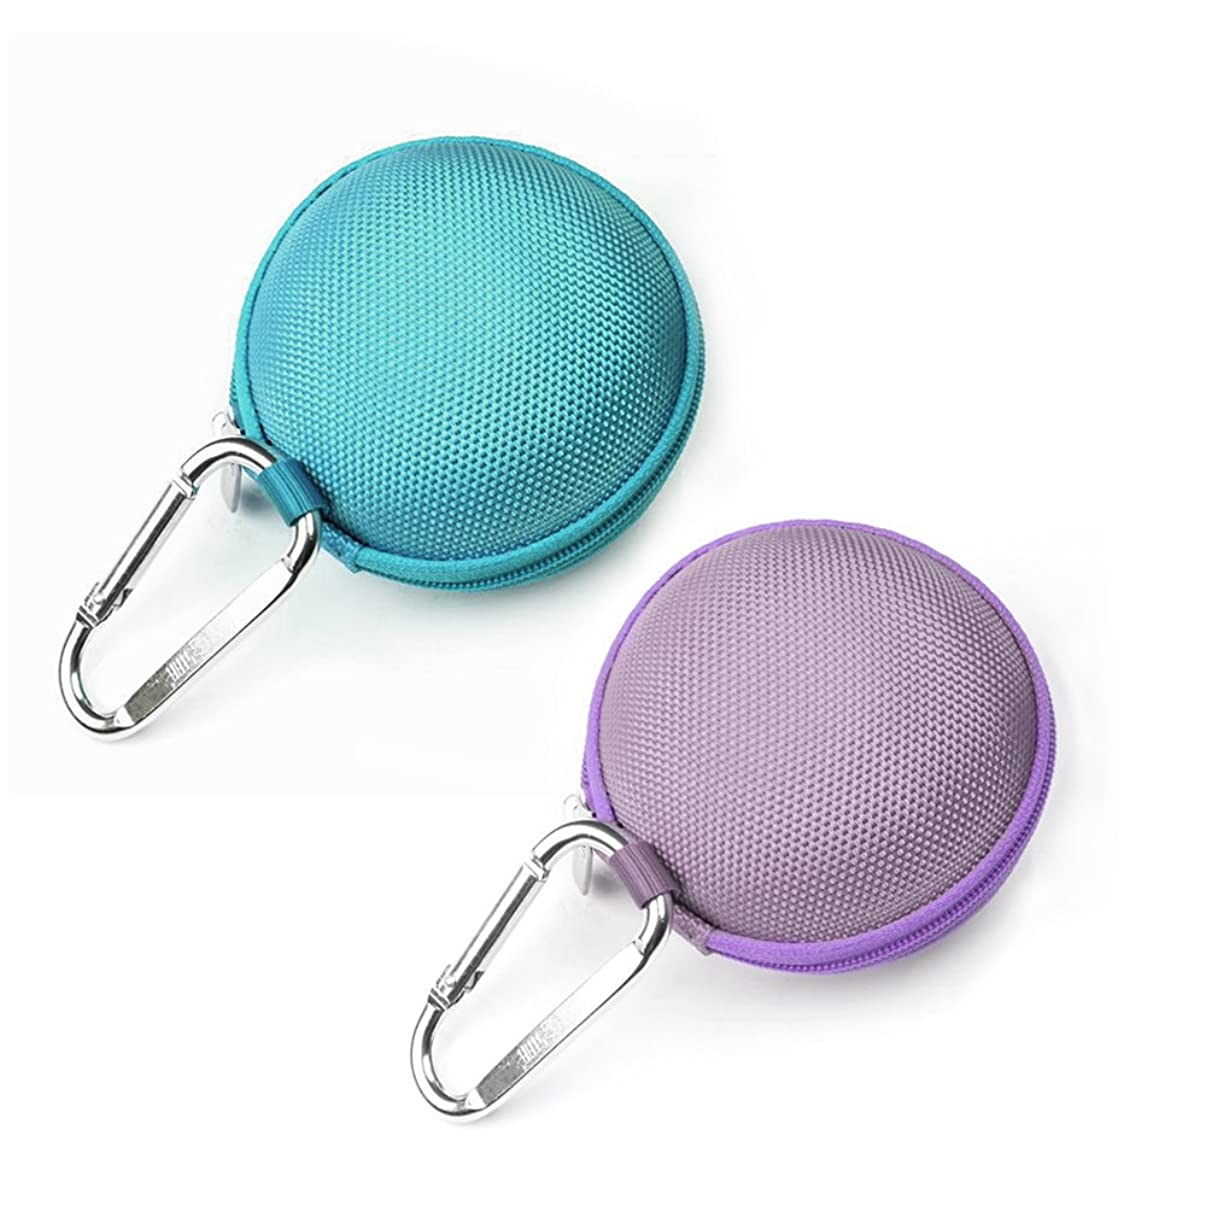 Case Star ? 2 PCS(Dark Green and Purple) Earphone Handsfree Headset HARD EVA Case - Clamshell/MESH Style with Zipper Enclosure, Inner Pocket, and Durable Exterior Plus Silver Climbing Carabiner With Case Star Cell Phone Bag (EVA Earphone Case-Dark Green and Purple)